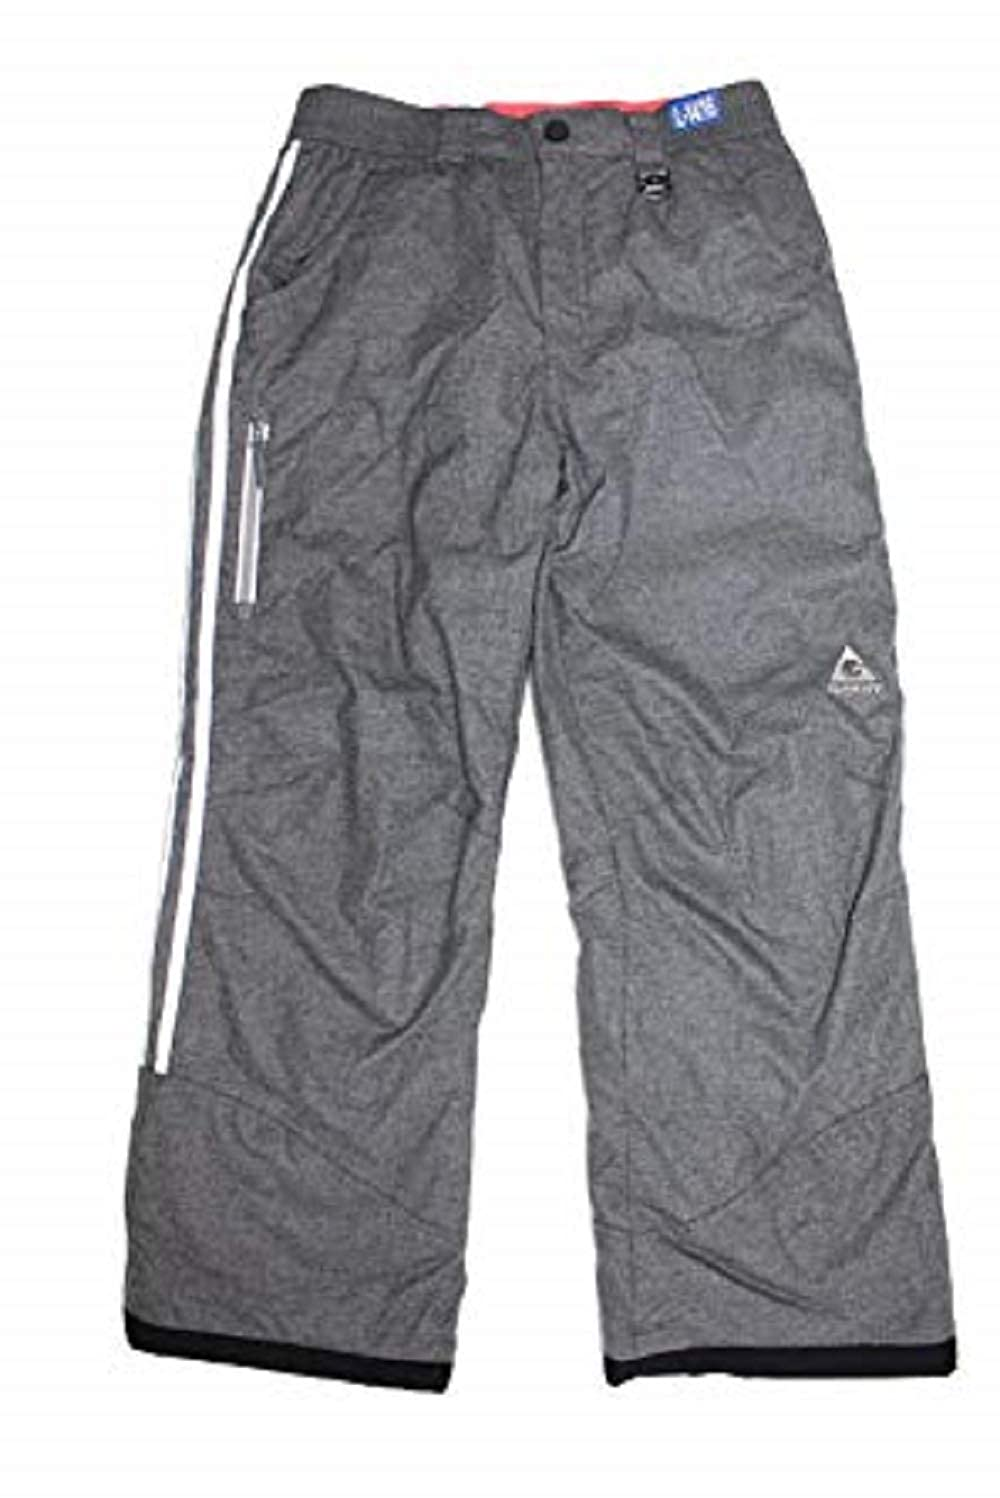 Gerry Girl's Reflective Insulated, Water, Wind Resistant Snow Pants 7/8